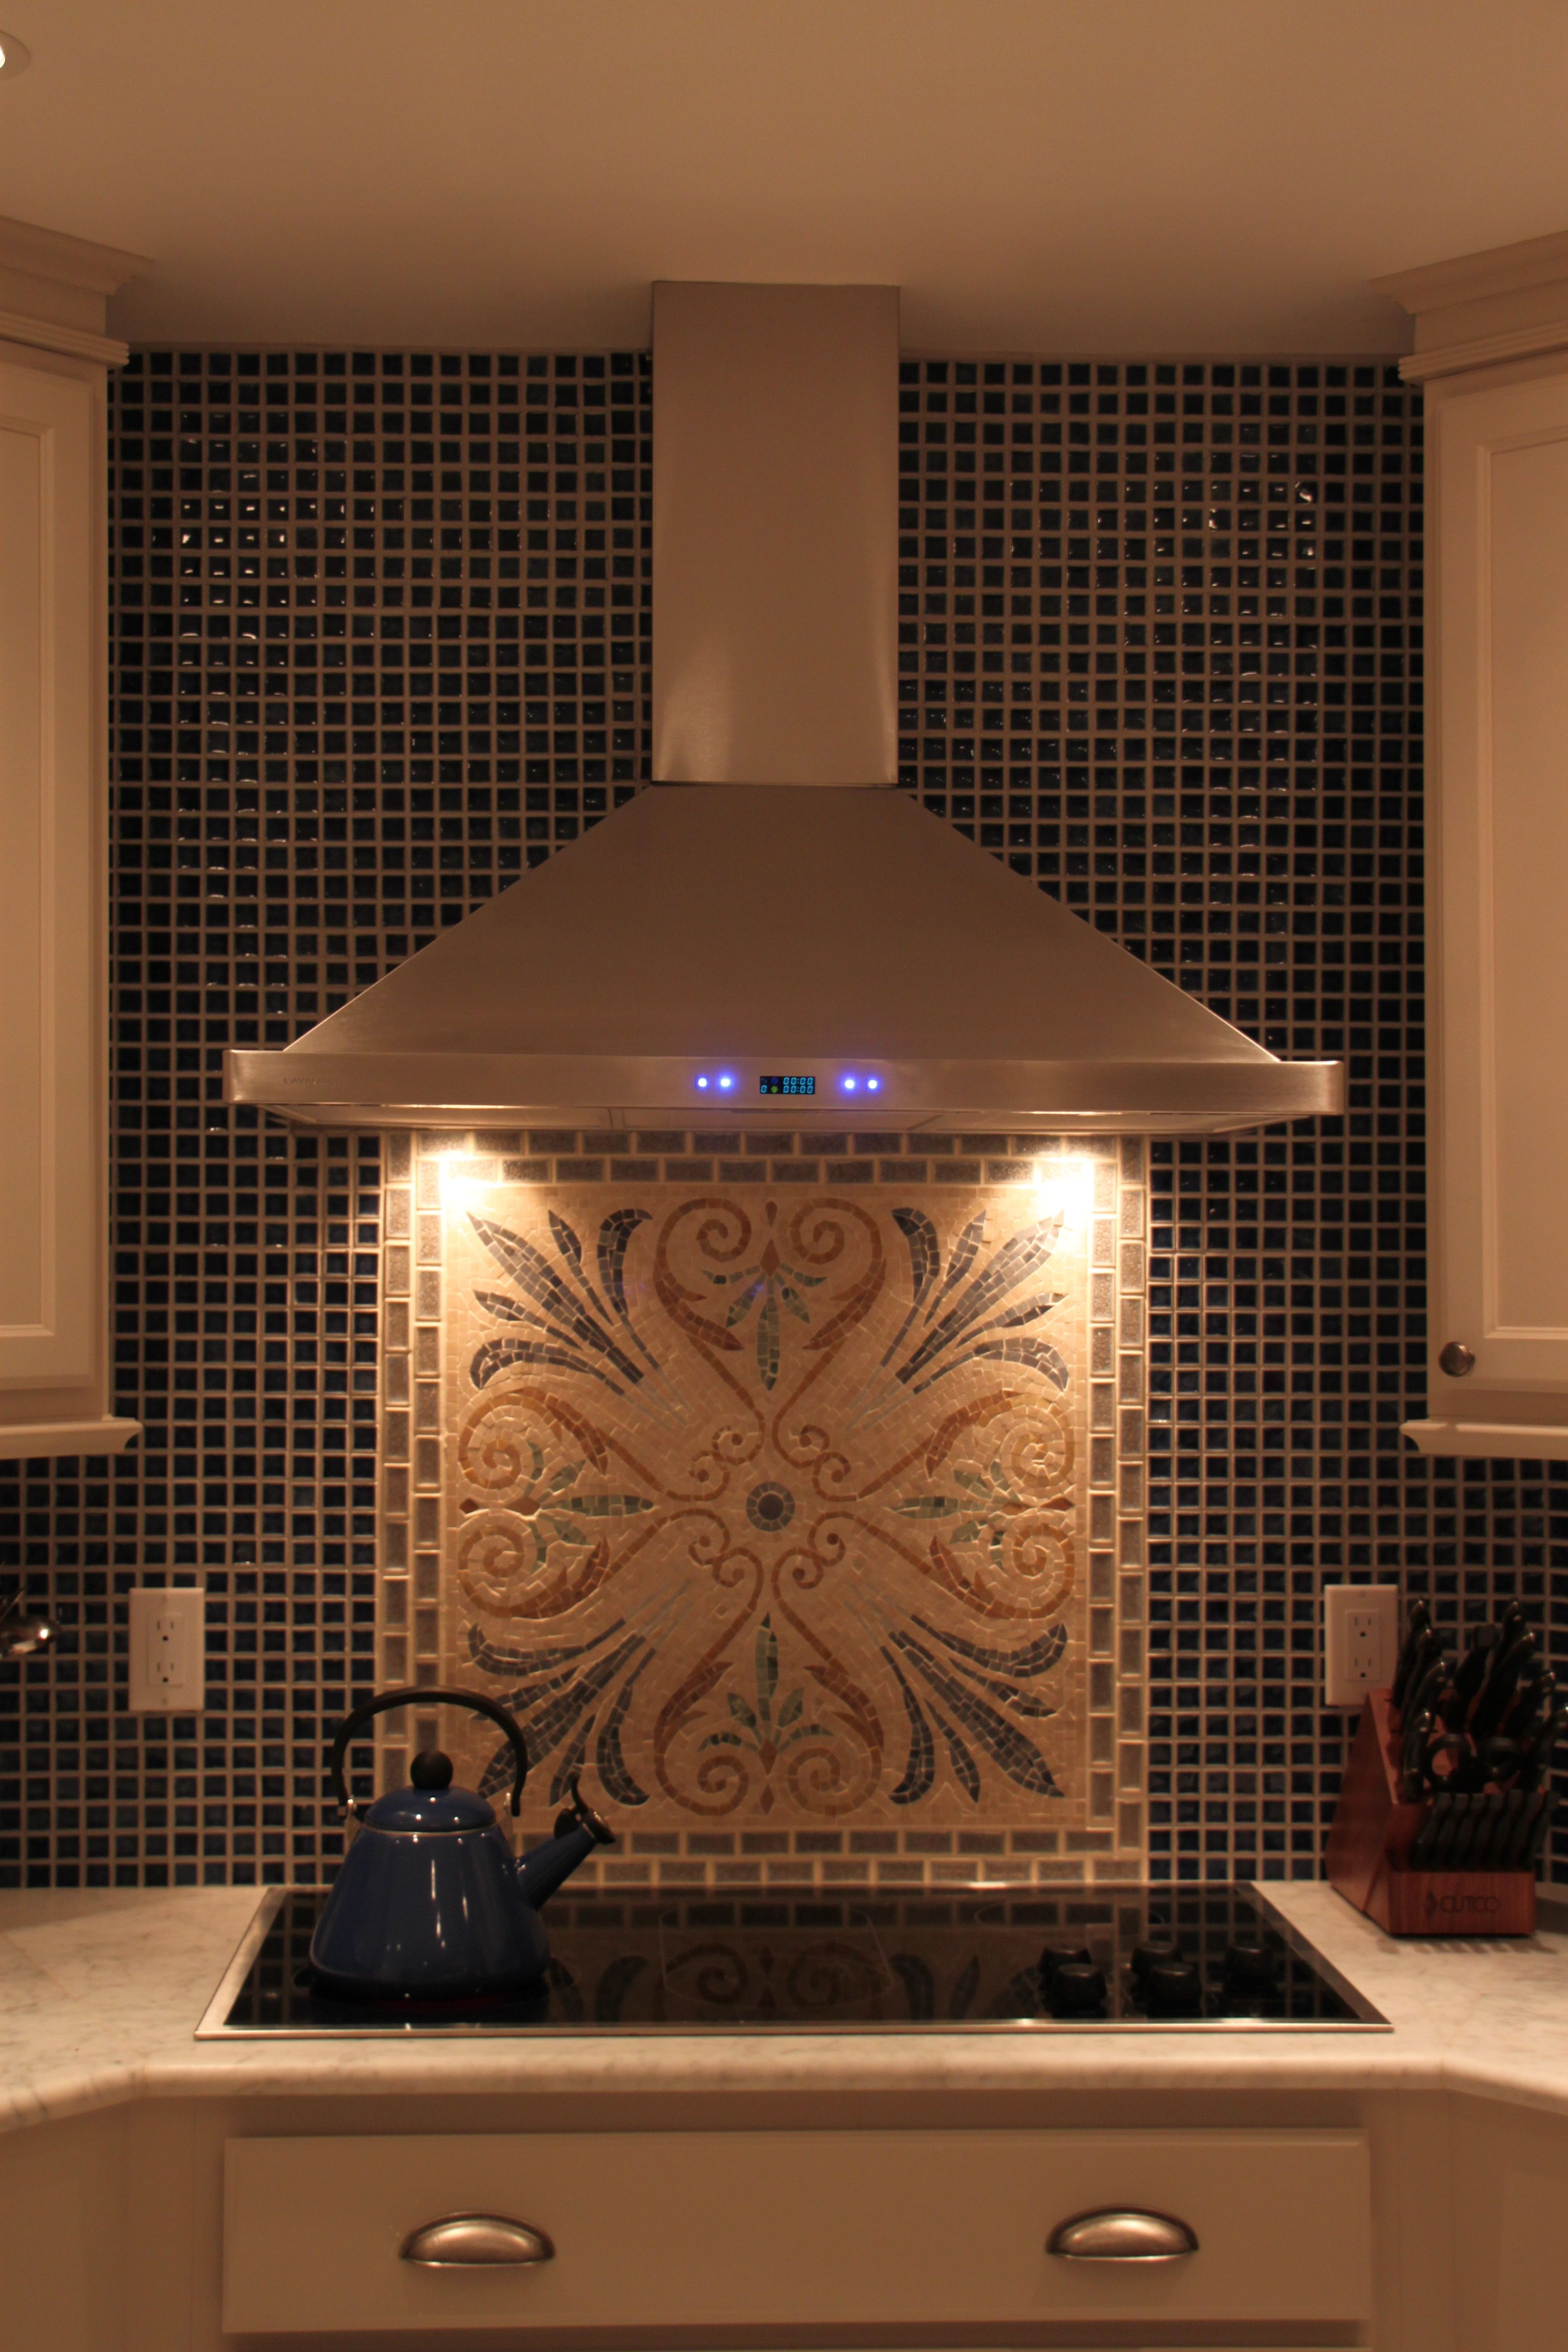 This Cavaliere Wall Mount Range Hood Looks Elegant Against The Wall And  Above This Range.